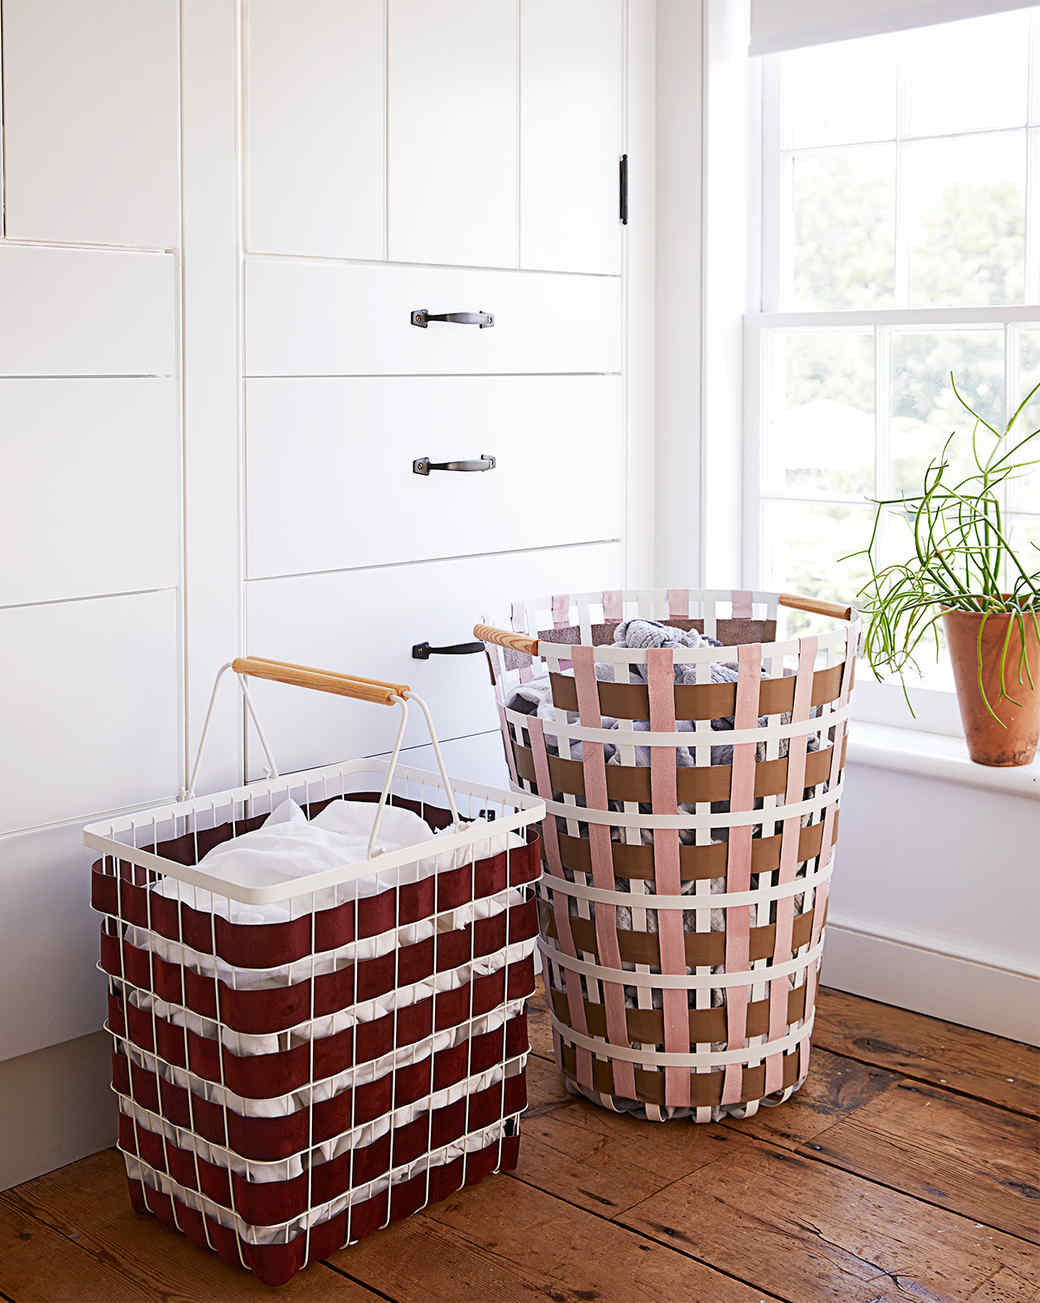 woven laundry hampers